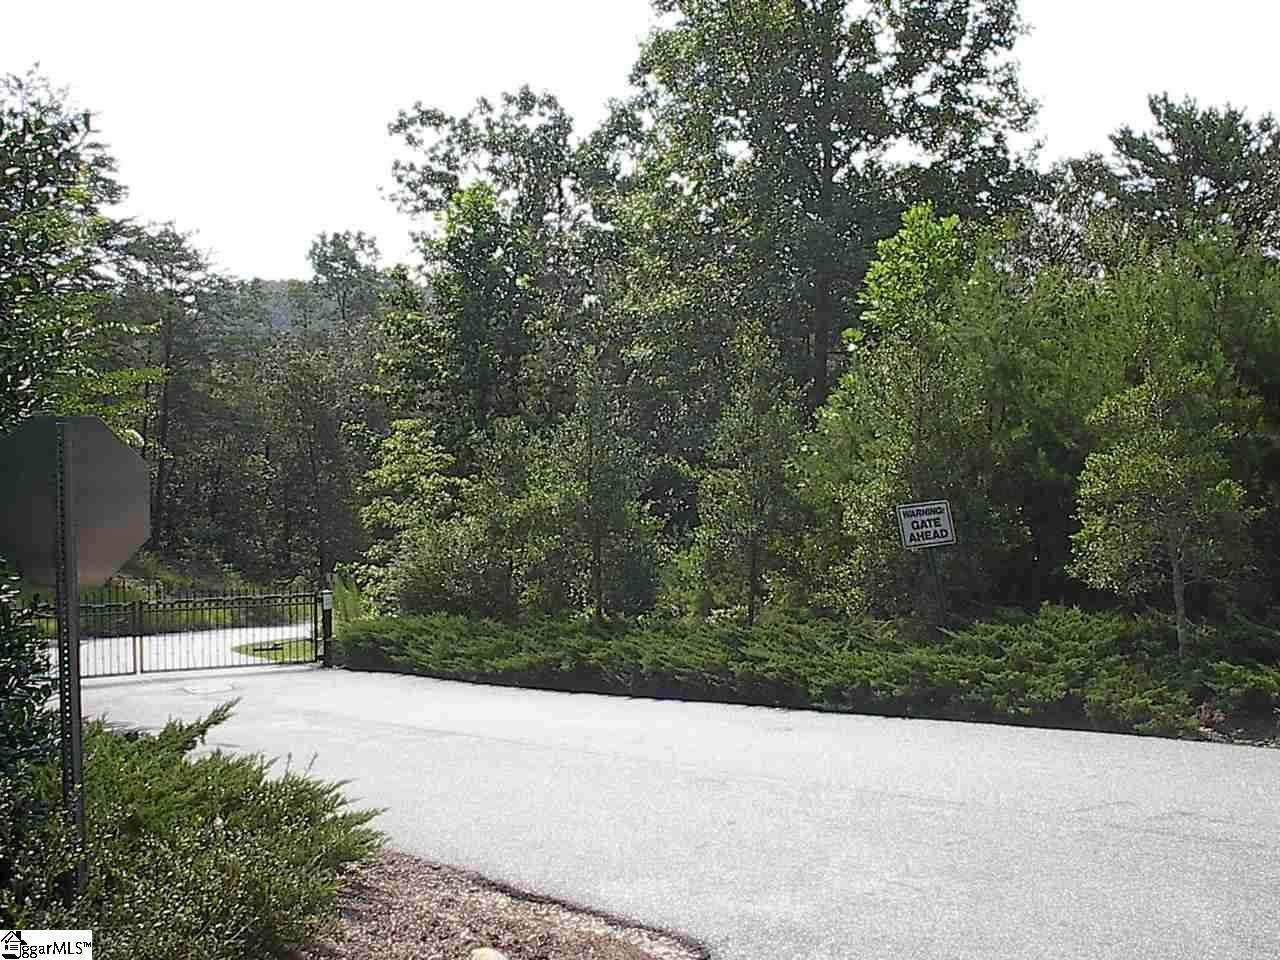 17. Residential Lot for Sale at The Cliffs At Keowee, Sunset, SC 29685